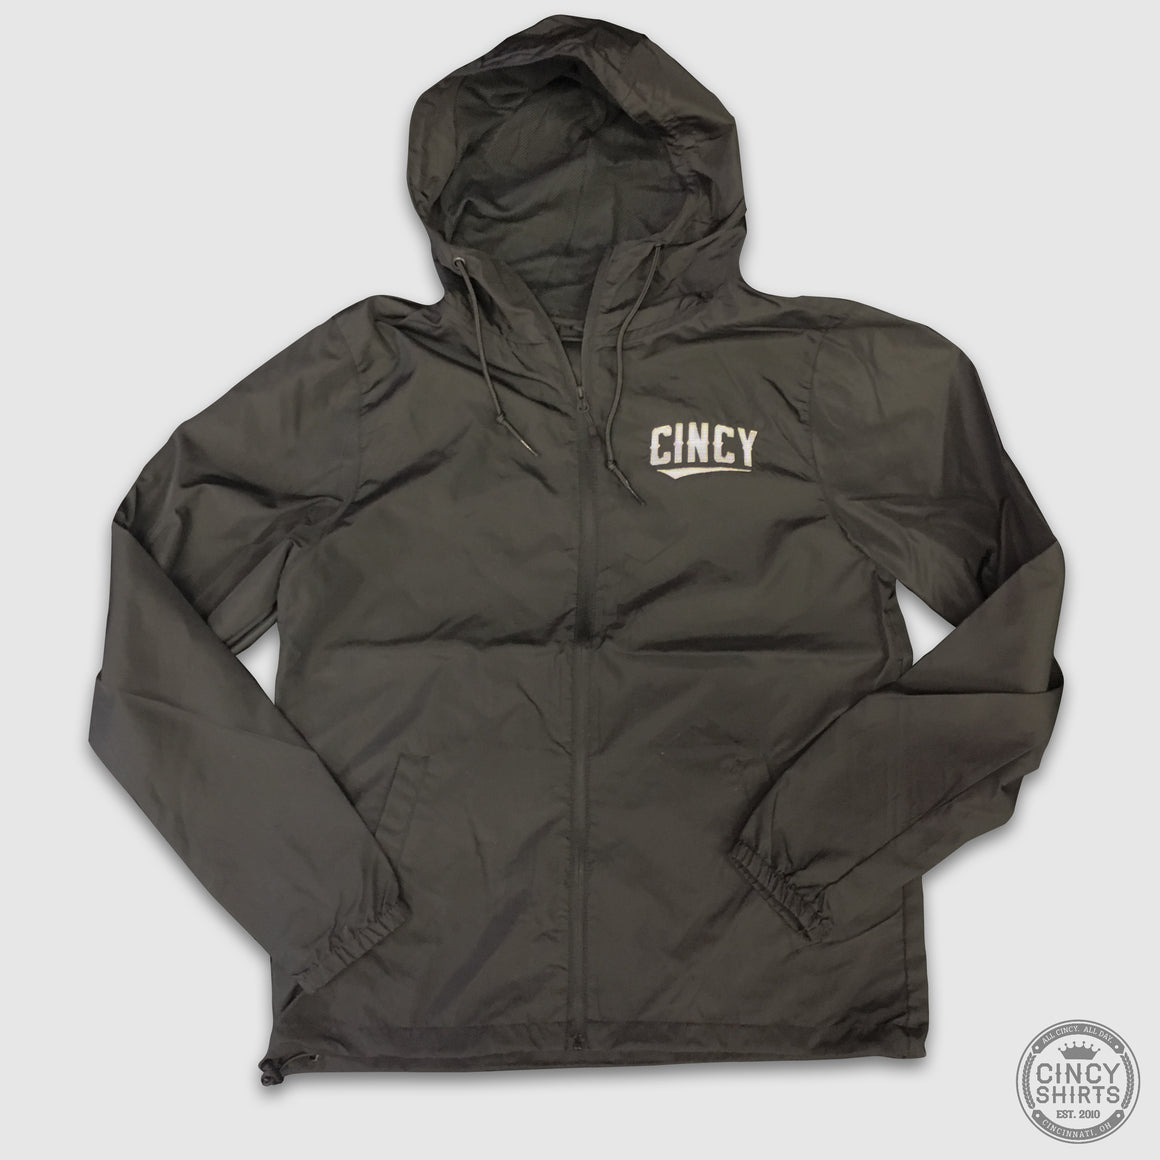 """CINCY"" Swoop Lightweight Windbreaker Jacket - Cincy Shirts"